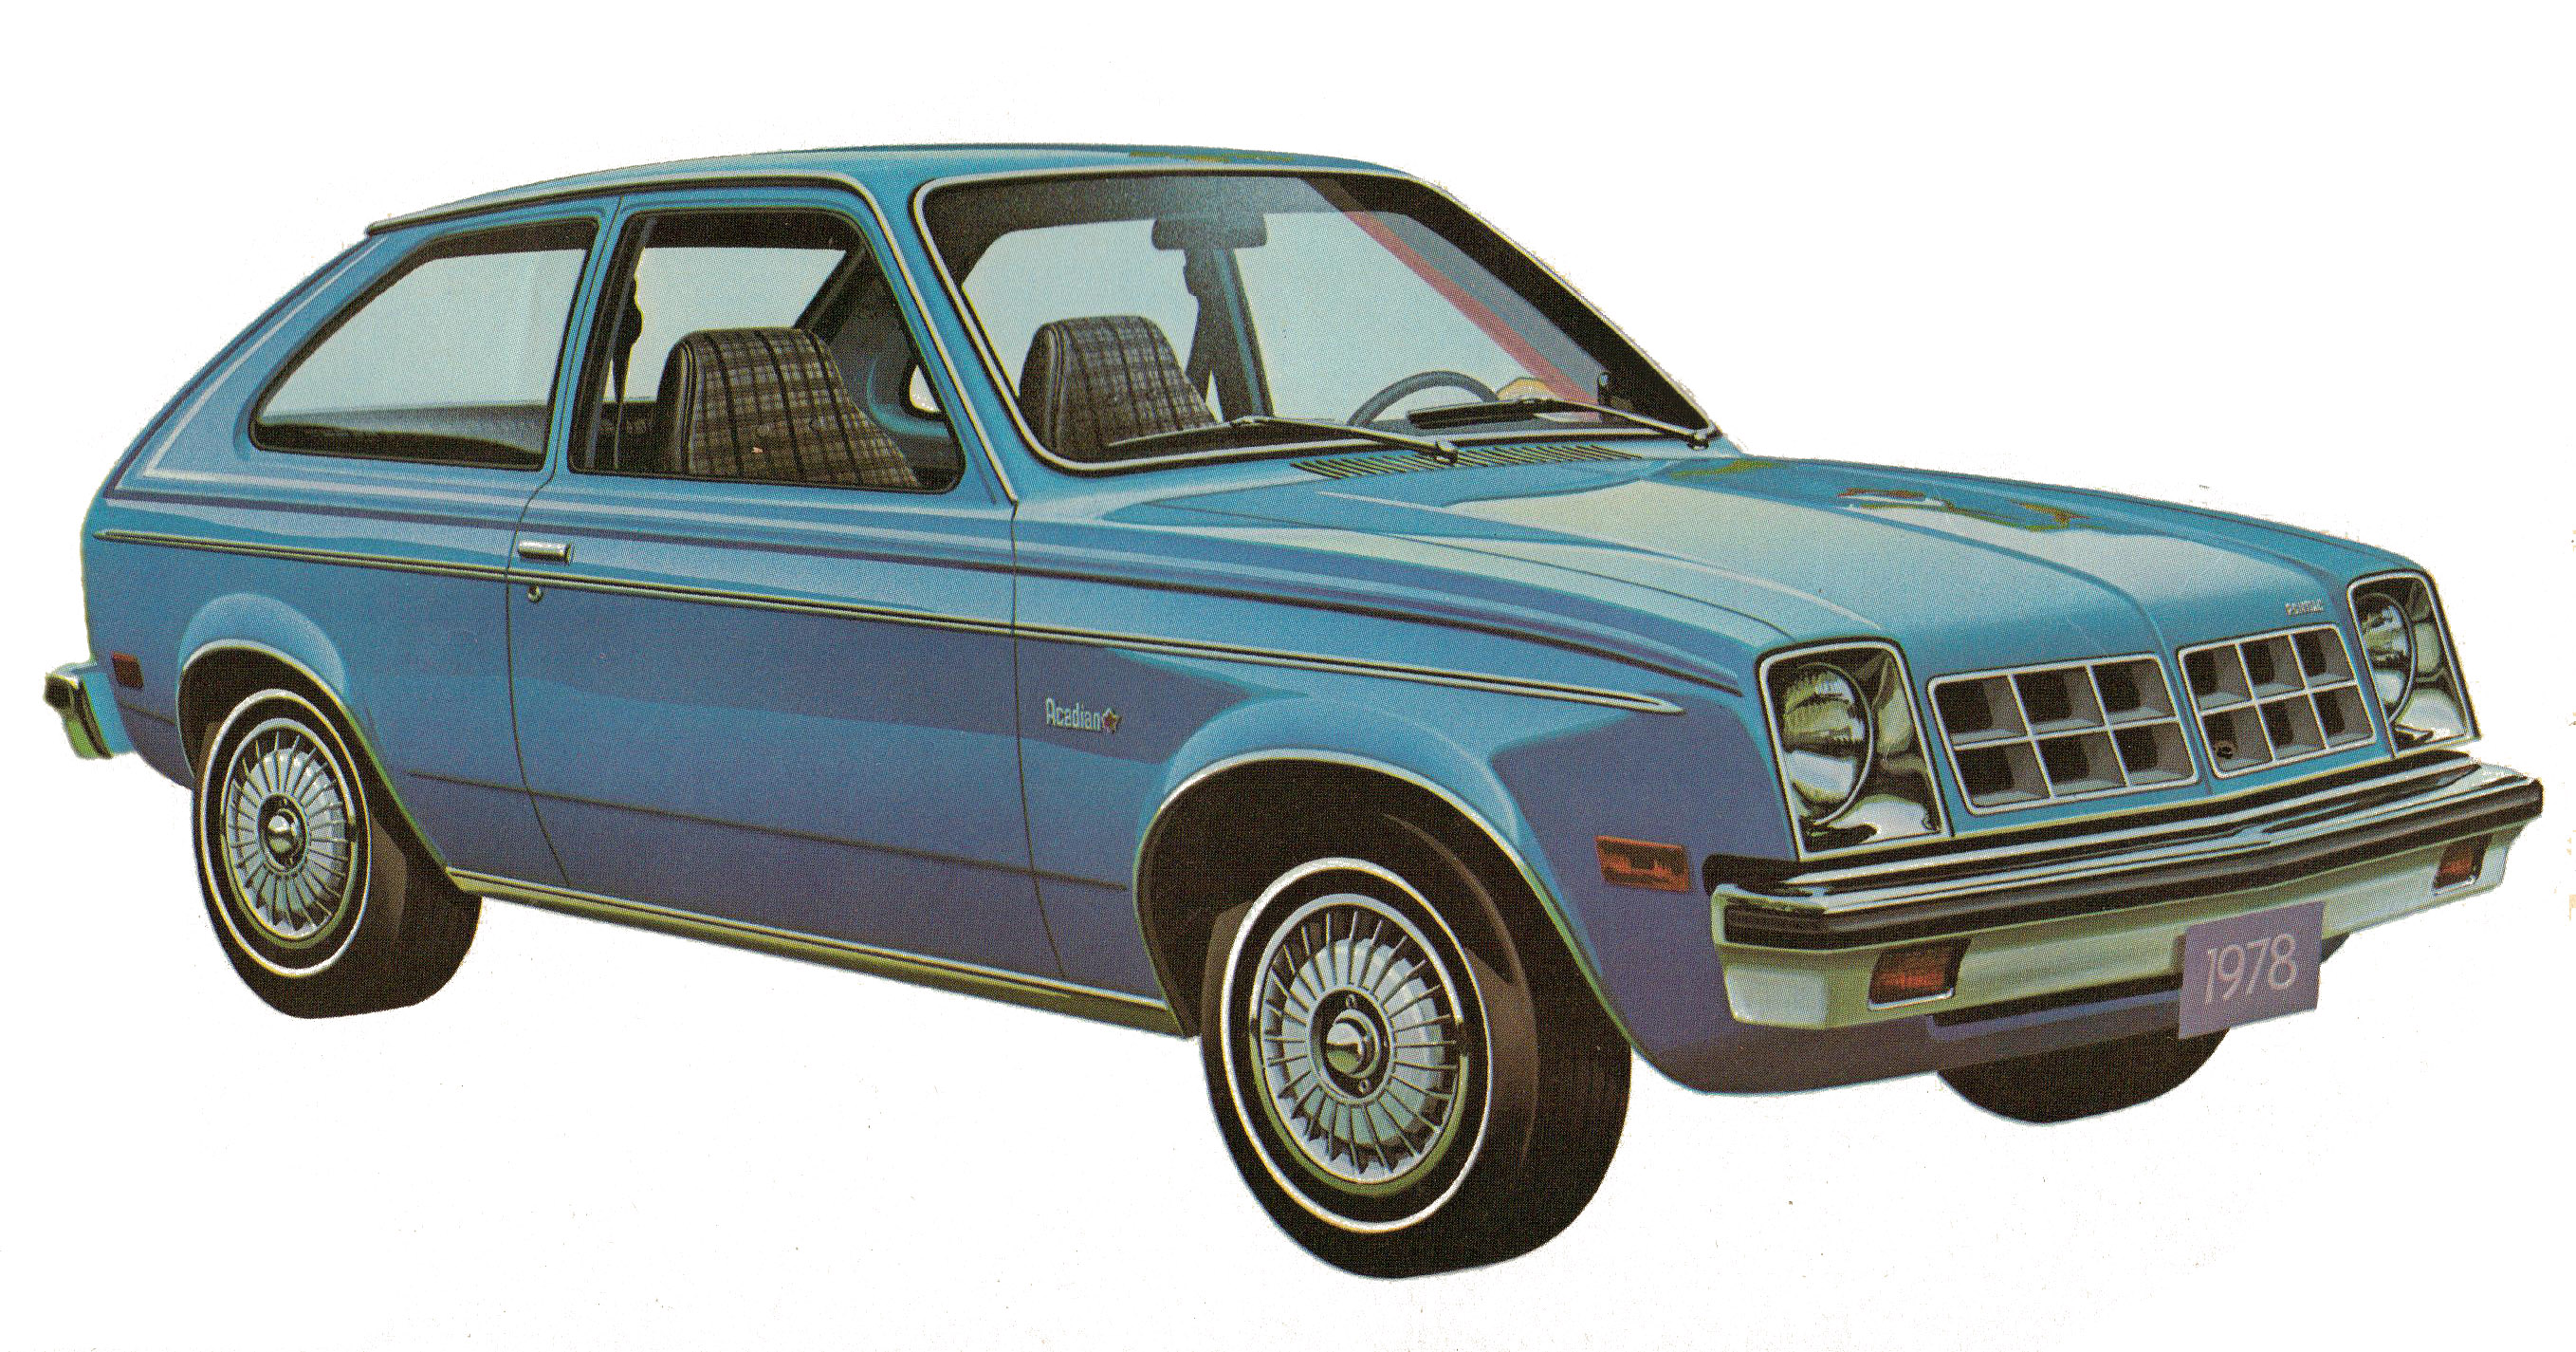 1978 Pontiac Acadian.